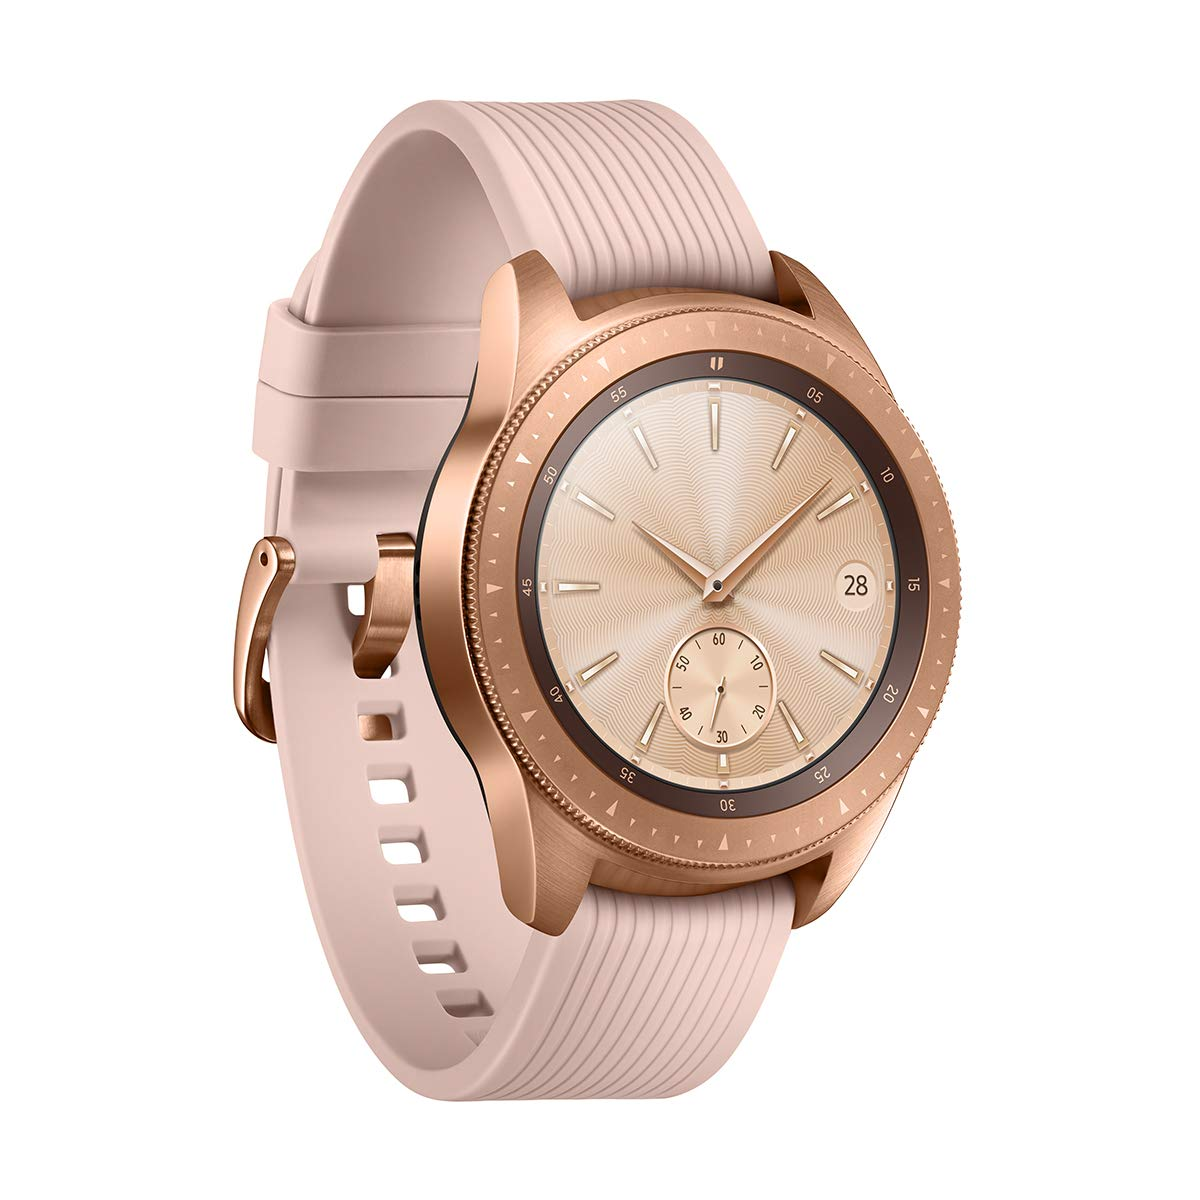 Samsung Galaxy Watch oro rosa